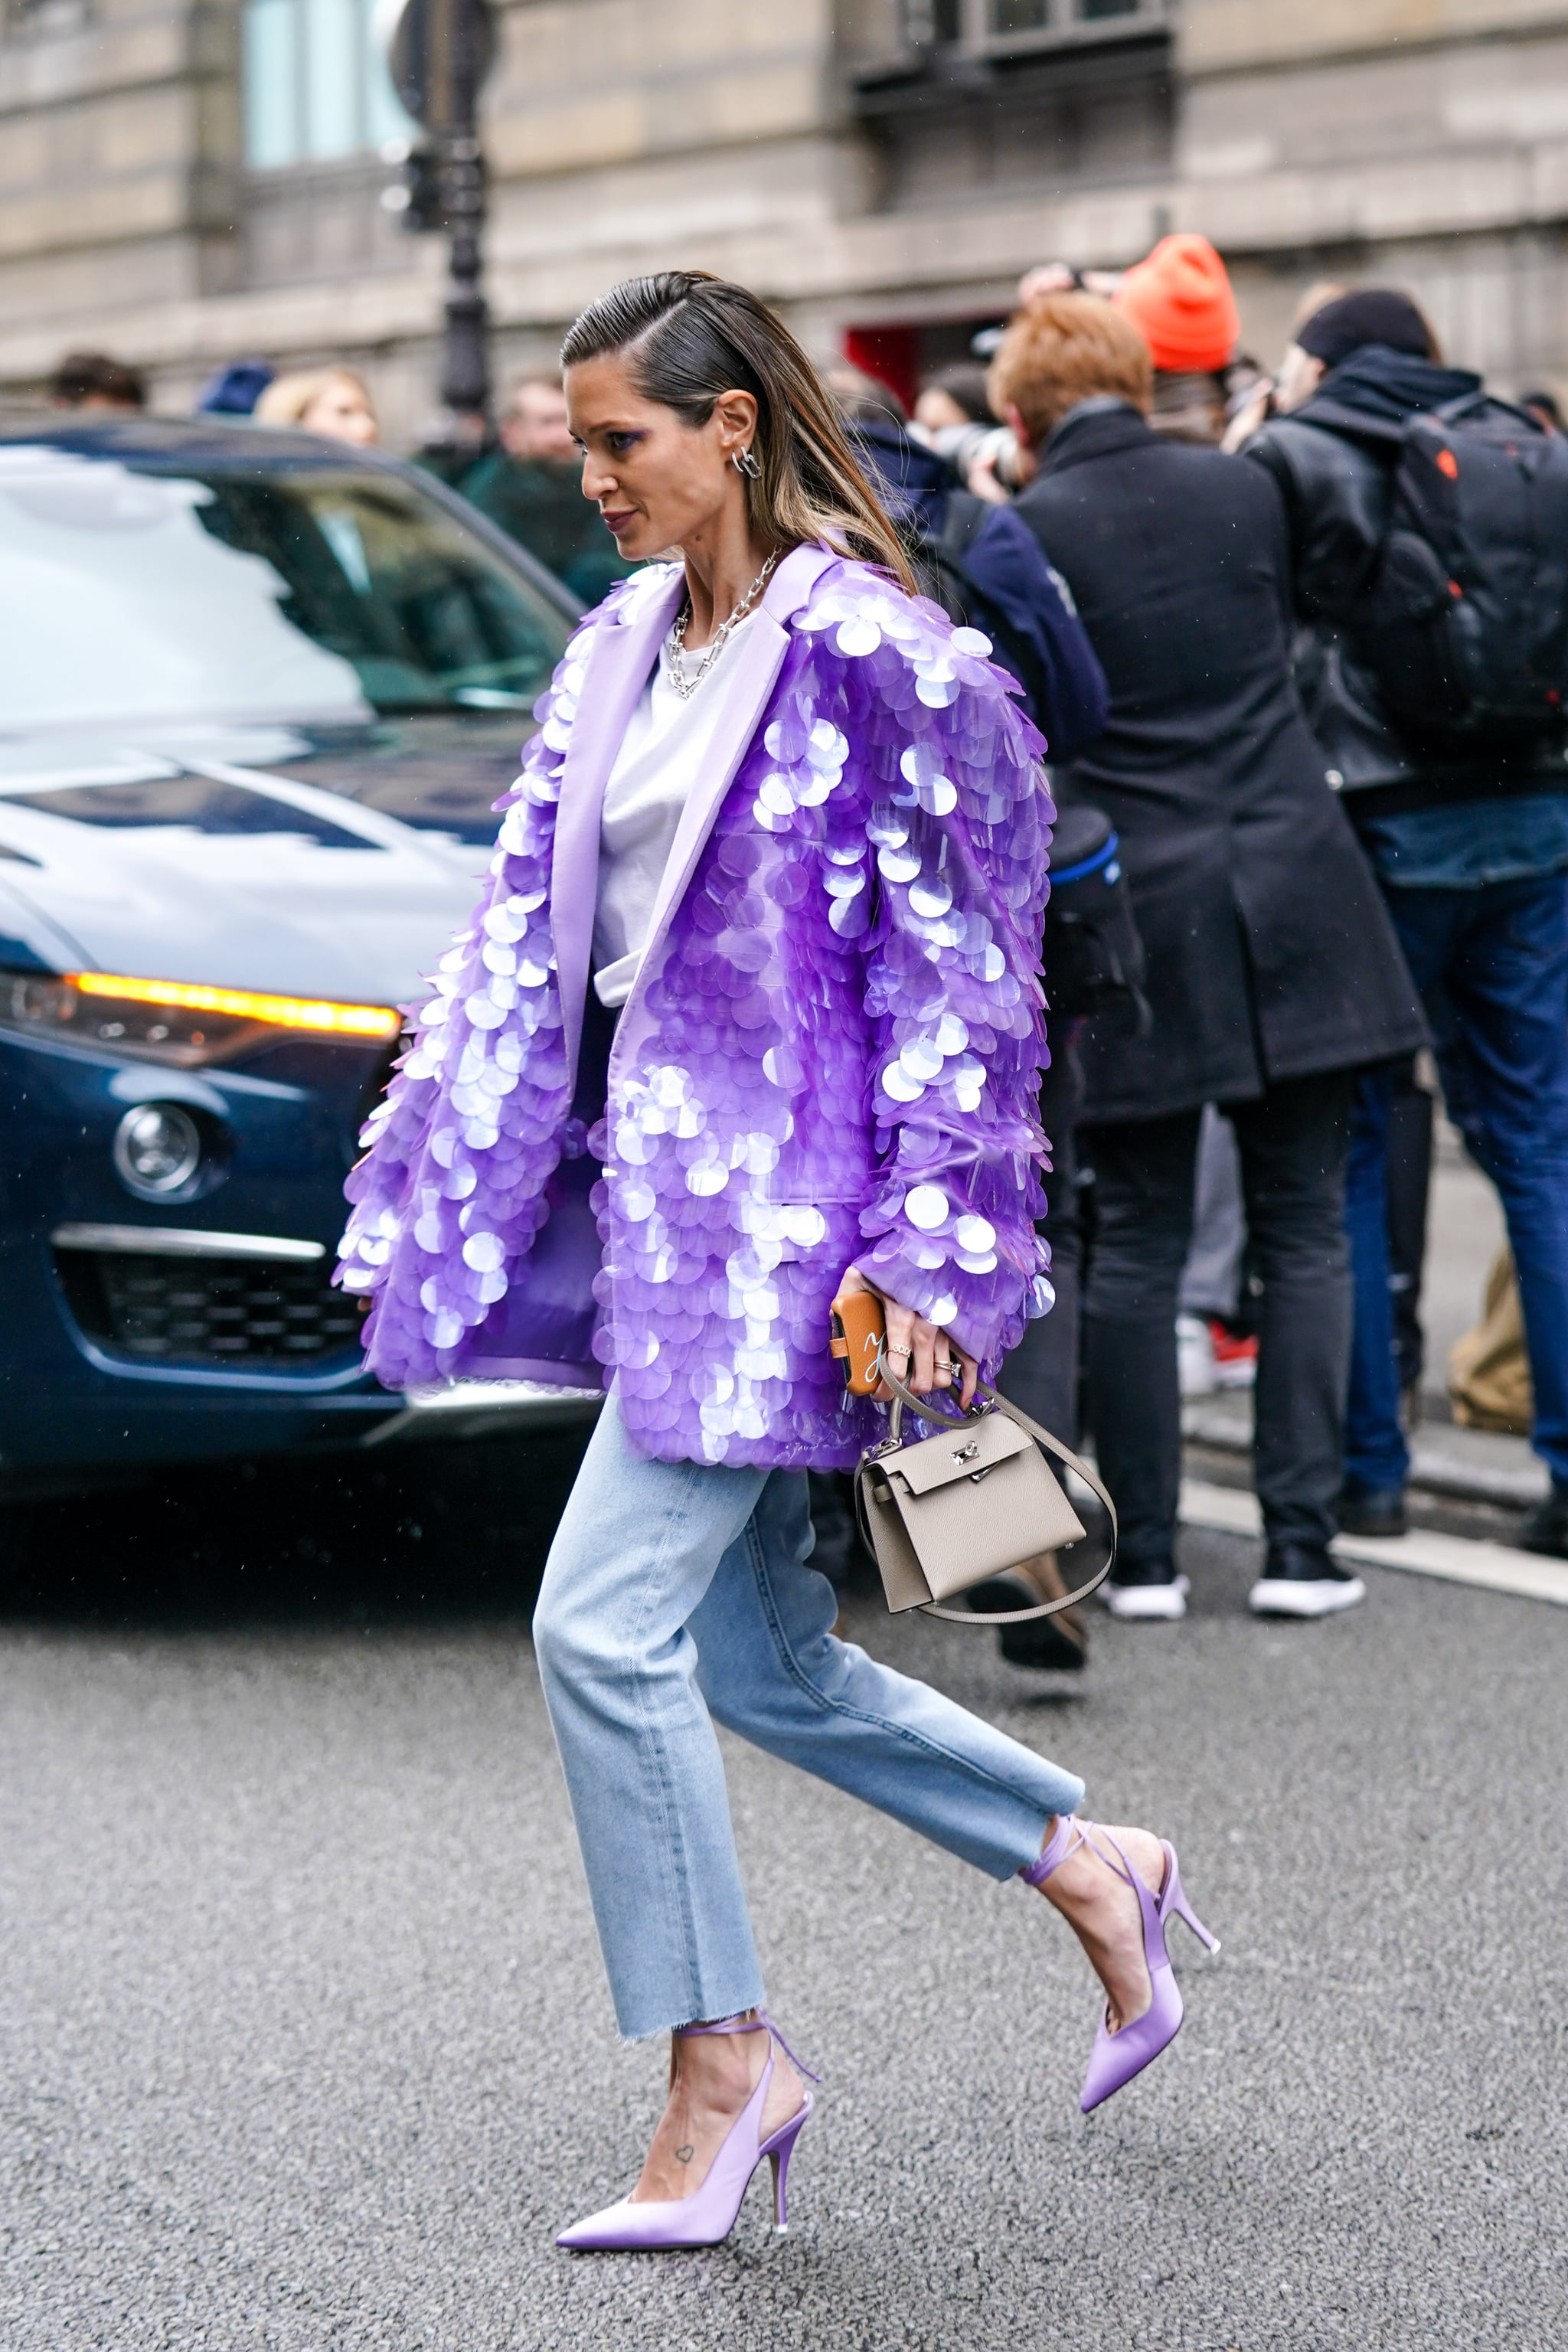 PARIS, FRANCE - MARCH 02: Helena Bordon wears earrings, a chain necklace, a white top, rings, a glittering sequin mauve jacket, a beige bag, blue ripped hem jeans, mauve pointy heeled ankle-strap pumps, outside Giambattista Valli, during Paris Fashion Week - Womenswear Fall/Winter 2020/2021, on March 02, 2020 in Paris, France. (Photo by Edward Berthelot/Getty Images)